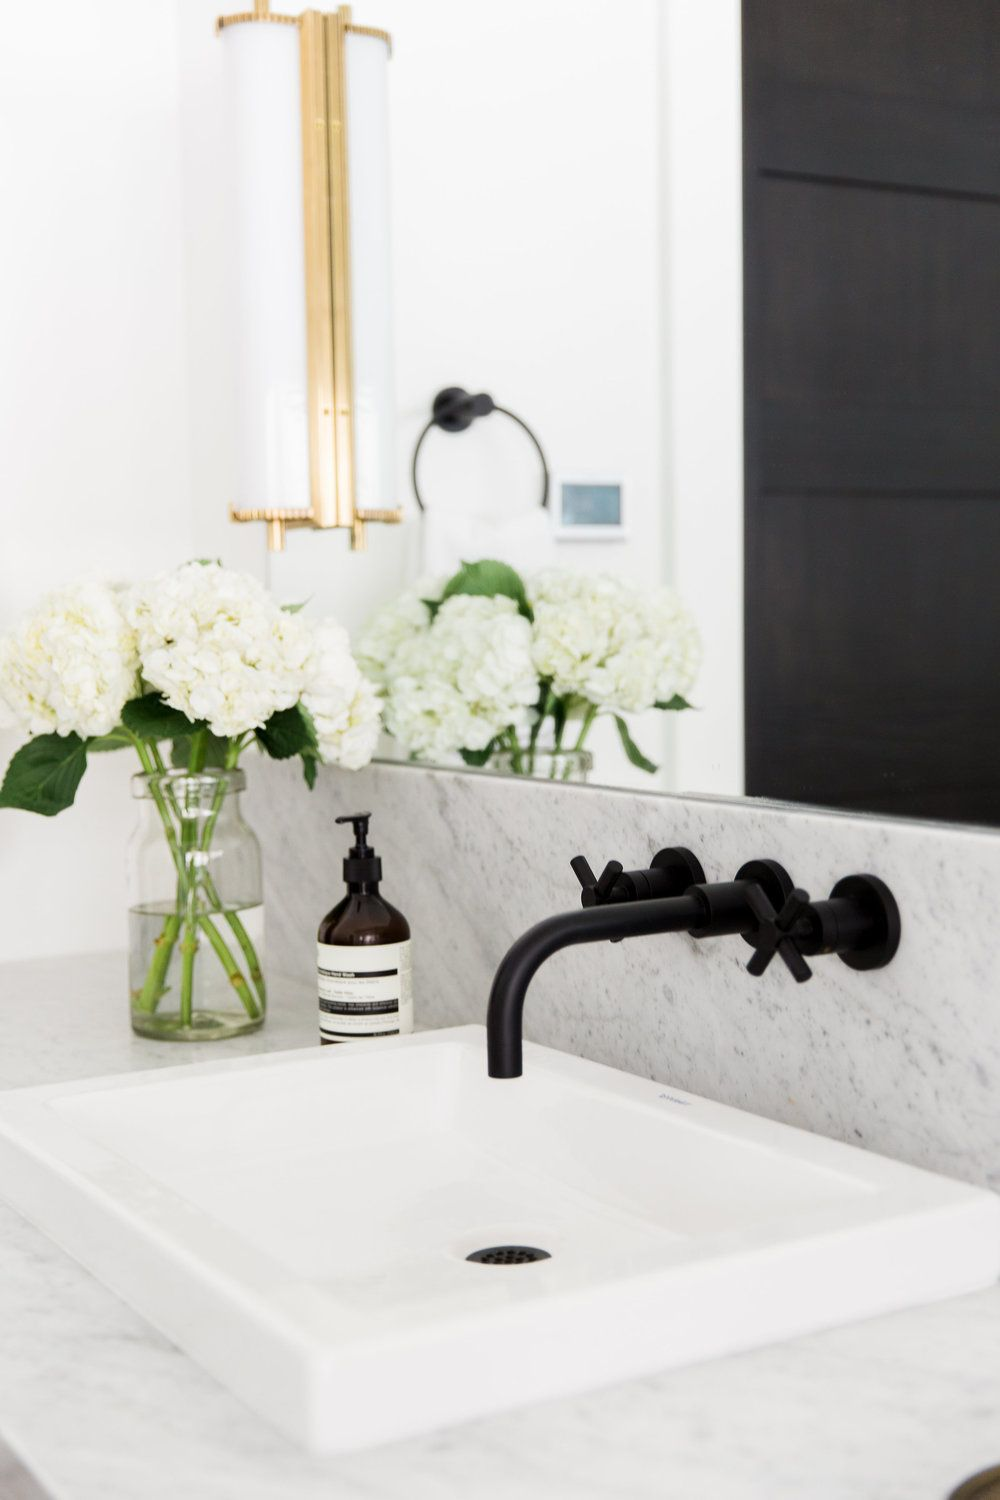 Wall mounted faucets for vessel sinks - Wall Mount Faucet Faucet And Shallow Sink Matte Black Fixtures Studio Mcgee